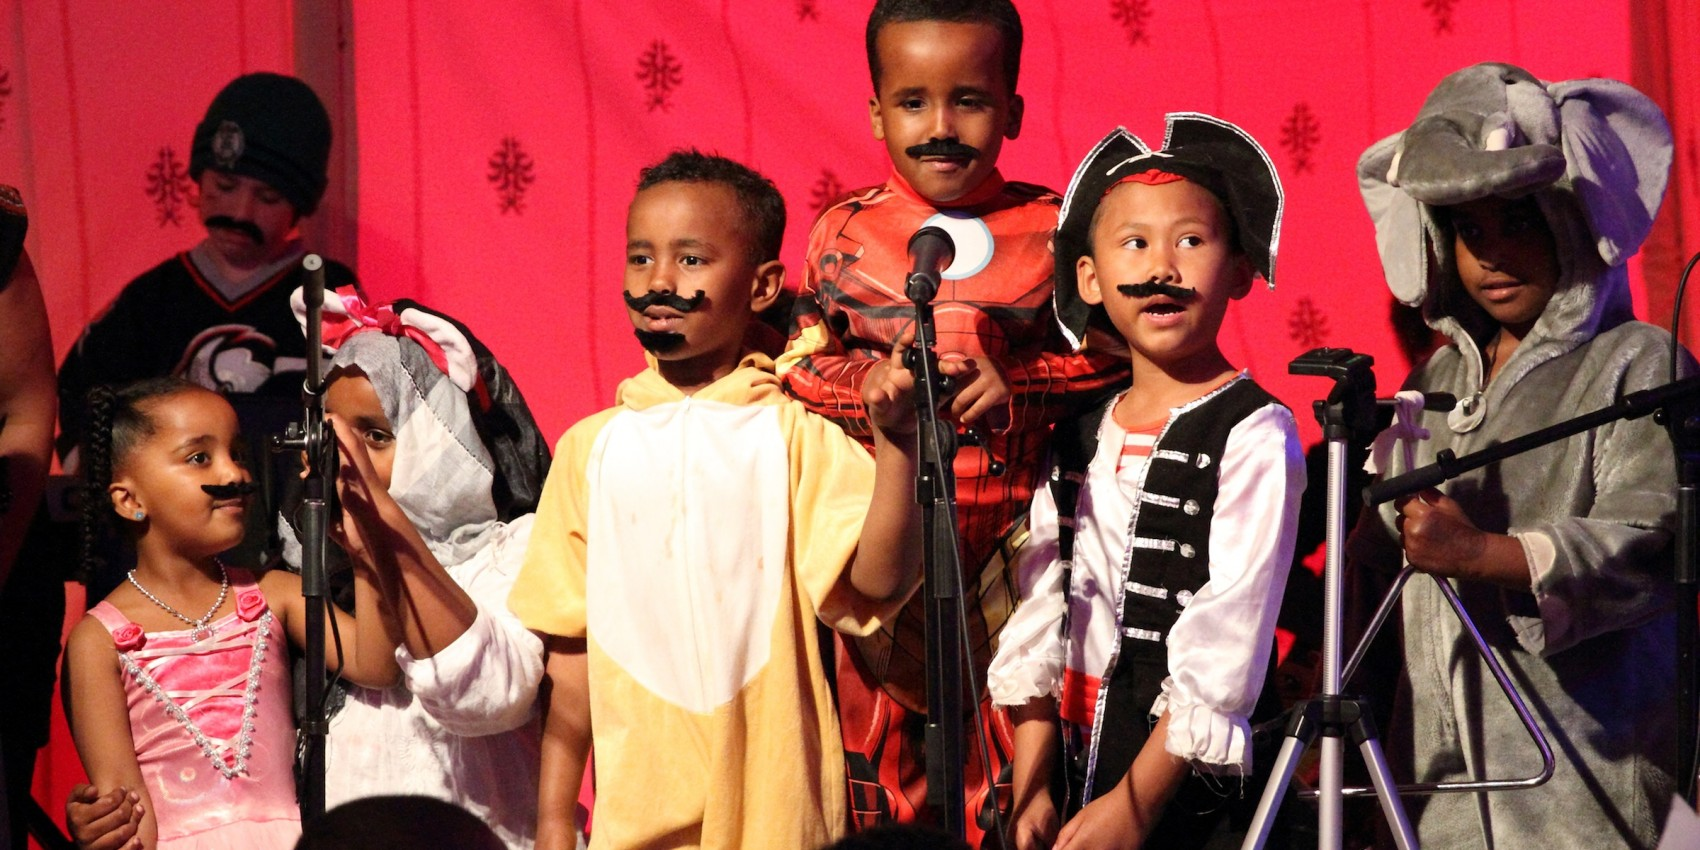 Seven young children in dress ups in a performance space with microphones